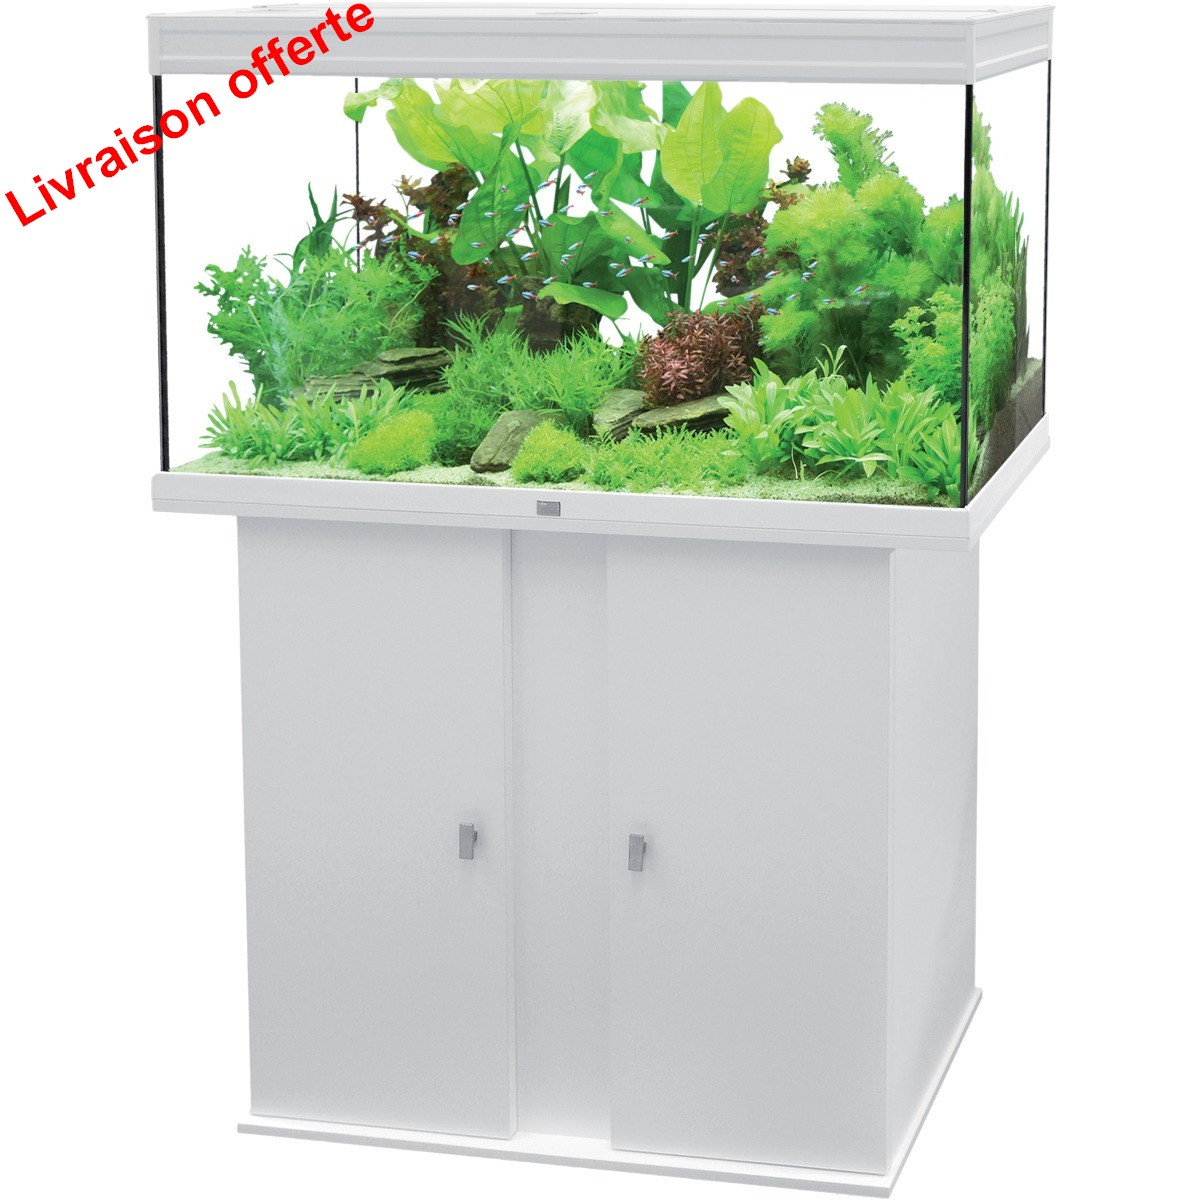 Ensemble aquatlantis aqua meuble elegance plus 118 blanc for Boutique aquariophilie